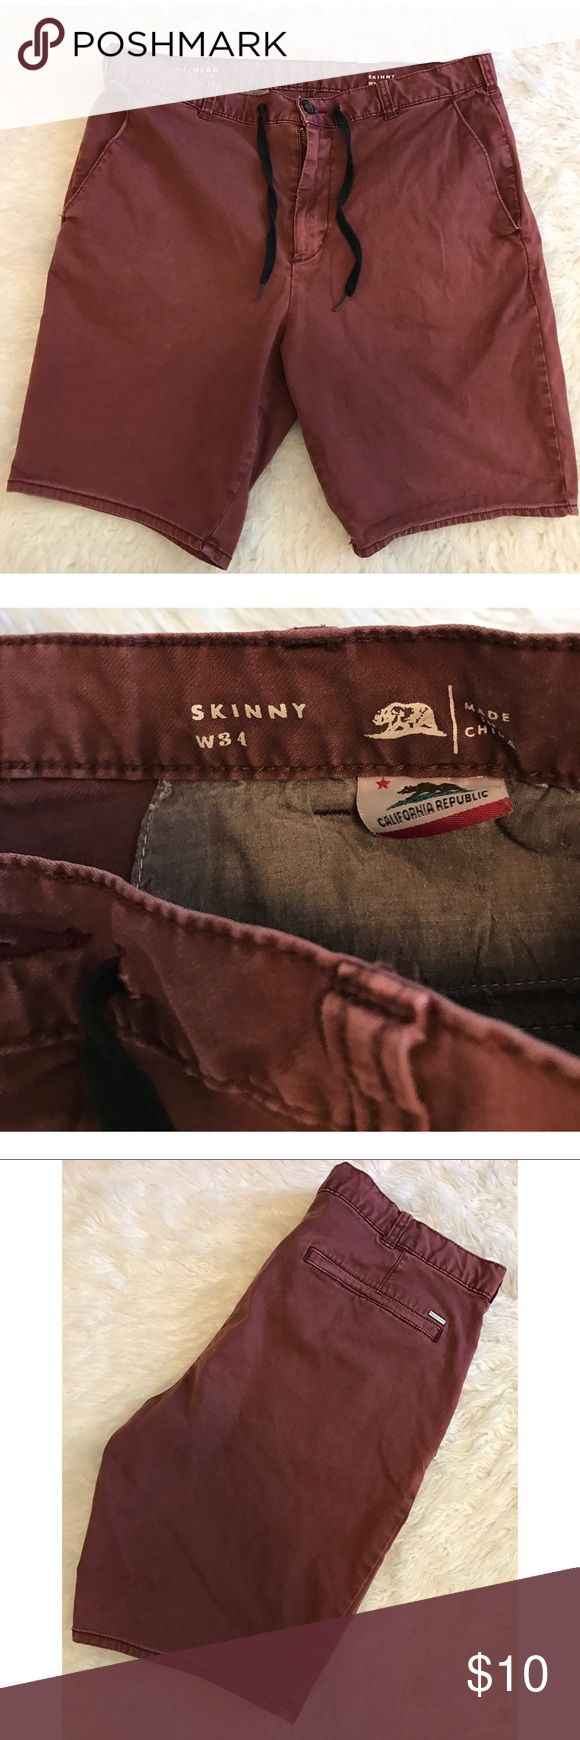 W34 • Skinny • Men's Cargo Shorts -Bundle & save!!  -Check out my other listings for more great deals!  -NO TRADES OR HOLDS -I try my best to do next day shipping  ❌❌❌PLEASE DO NOT BUNDLE ANY OF THE LOTS TOGETHER, the shipping weight will be over the limit and I will cancel your order. If you have any questions  - please ask!  ❌❌❌ Bullhead Shorts Cargo